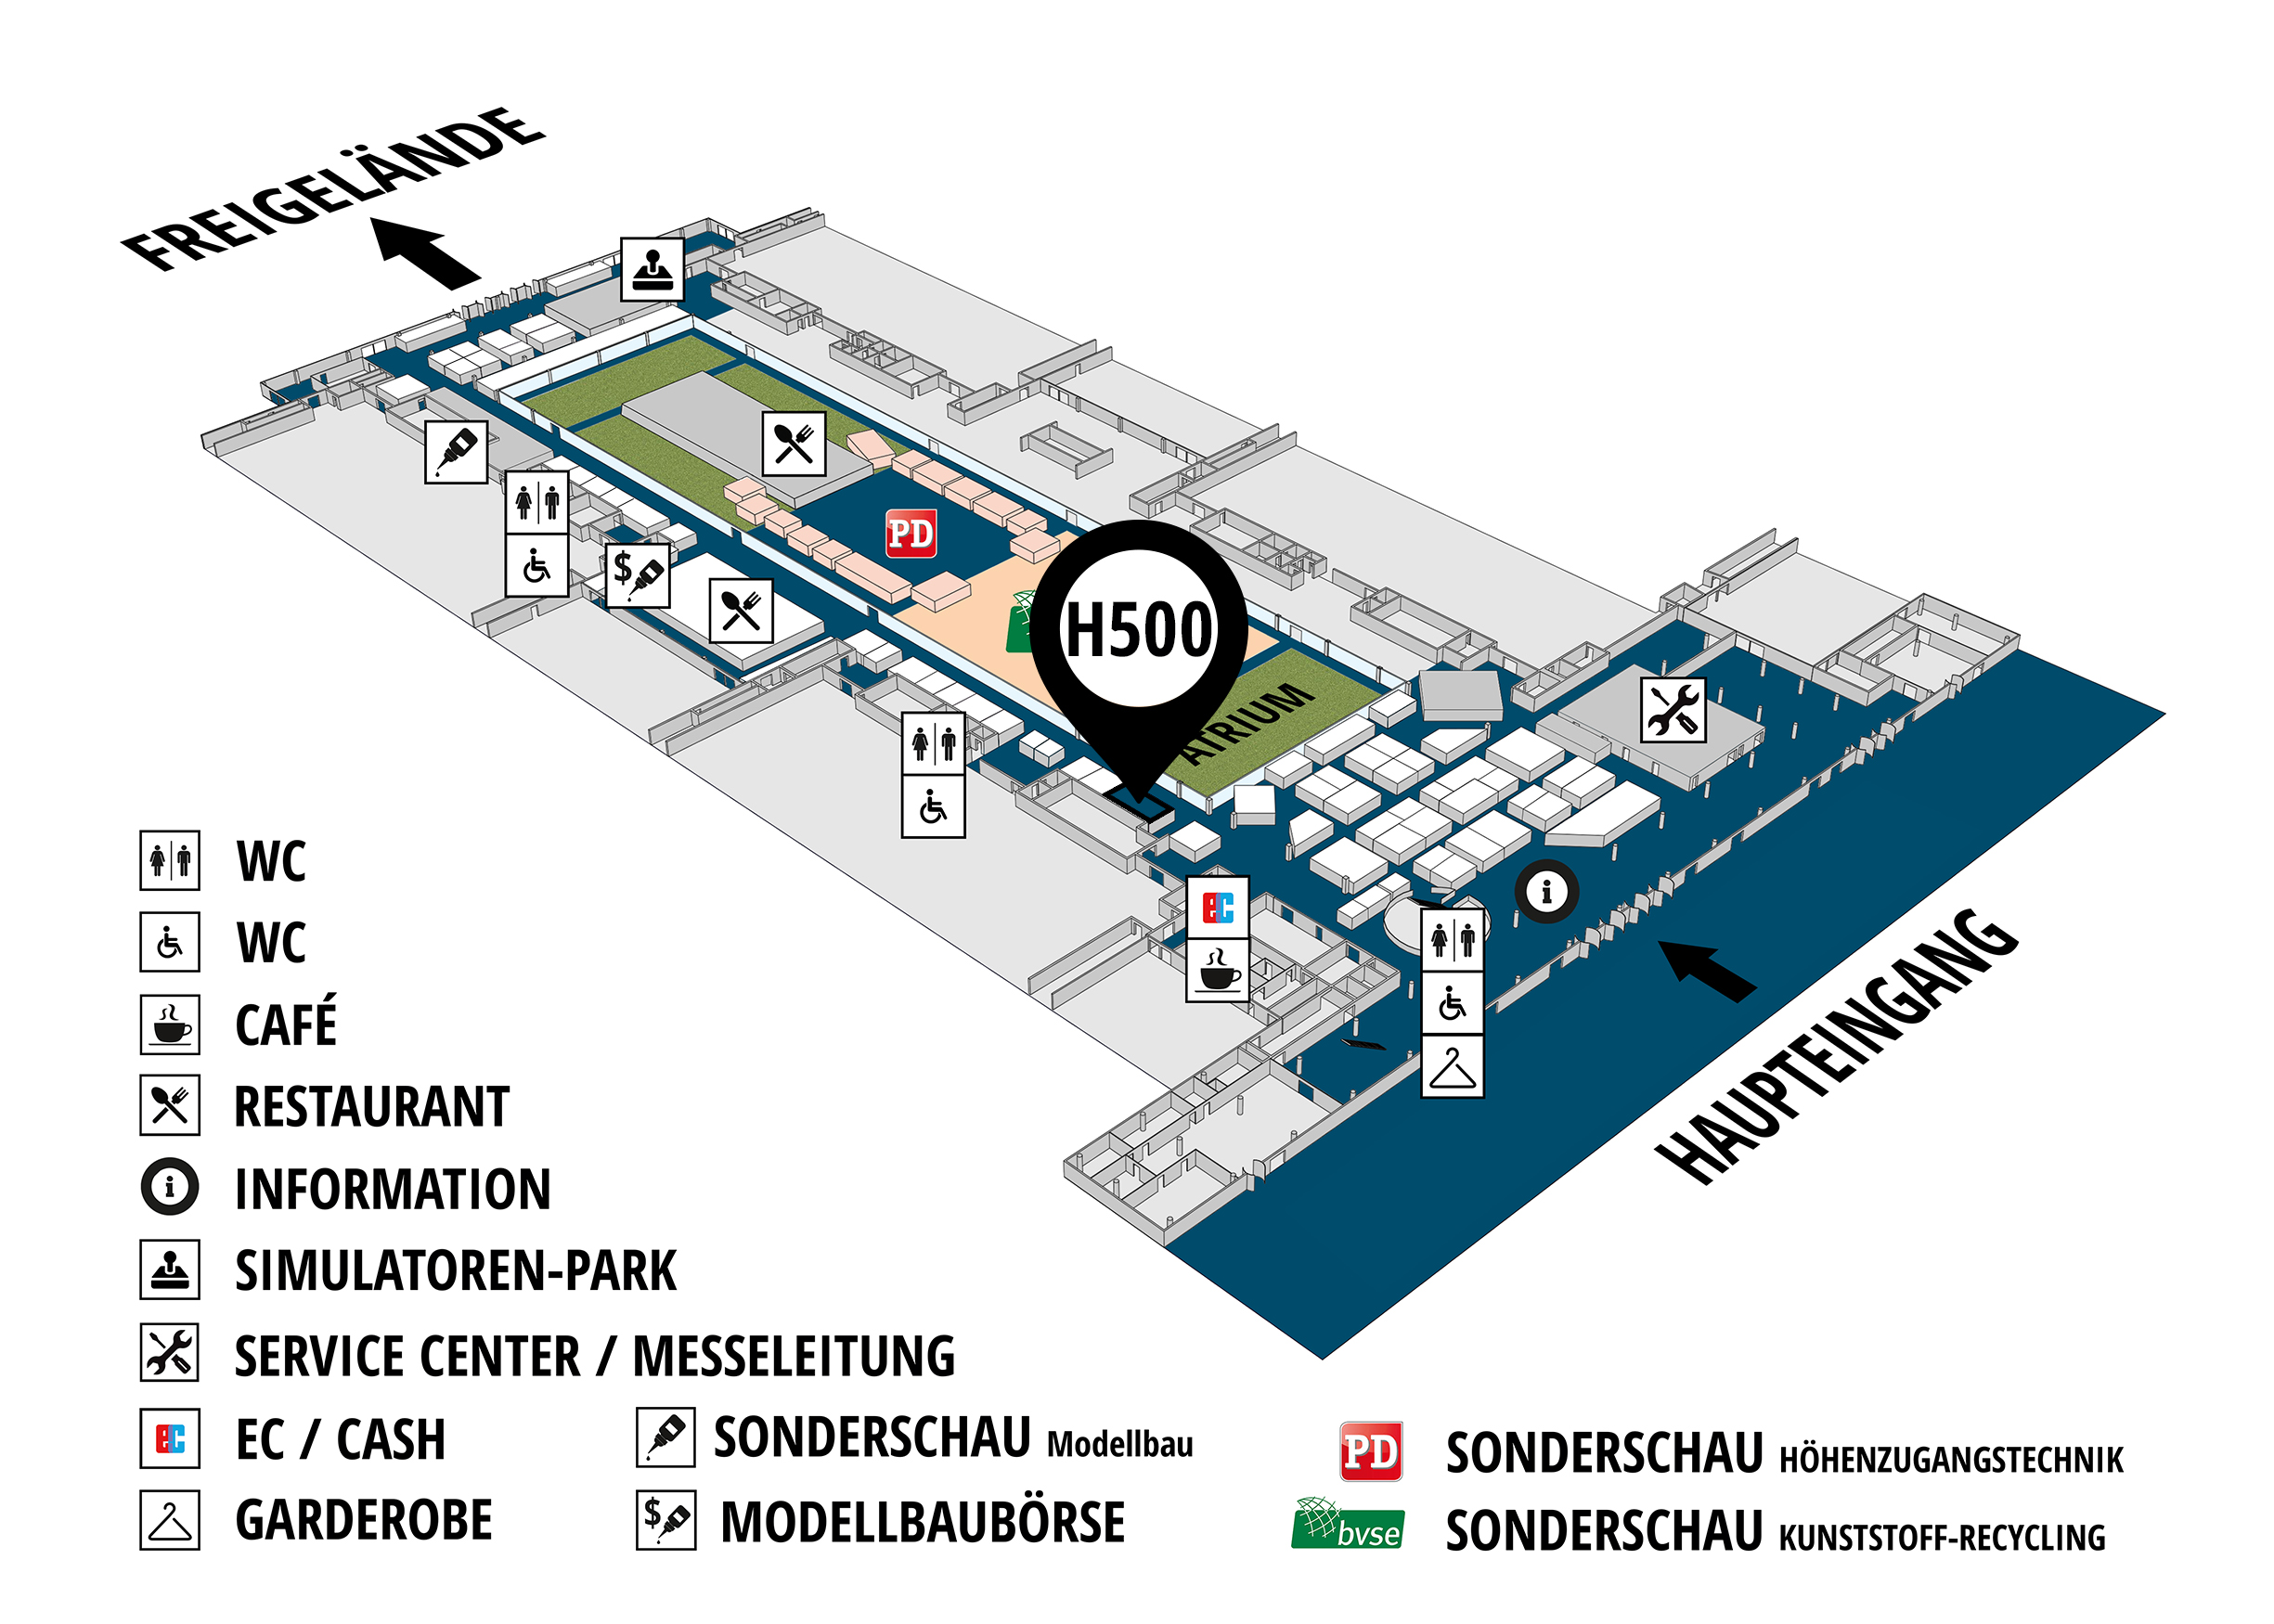 RecyclingAKTIV & TiefbauLIVE 2019. The Demonstration Trade Fairs ||Demonstration trade fair for waste removal and recycling. Demonstration trade fair for road construction and civil engineering. hall map (Visitors circuit): stand H500